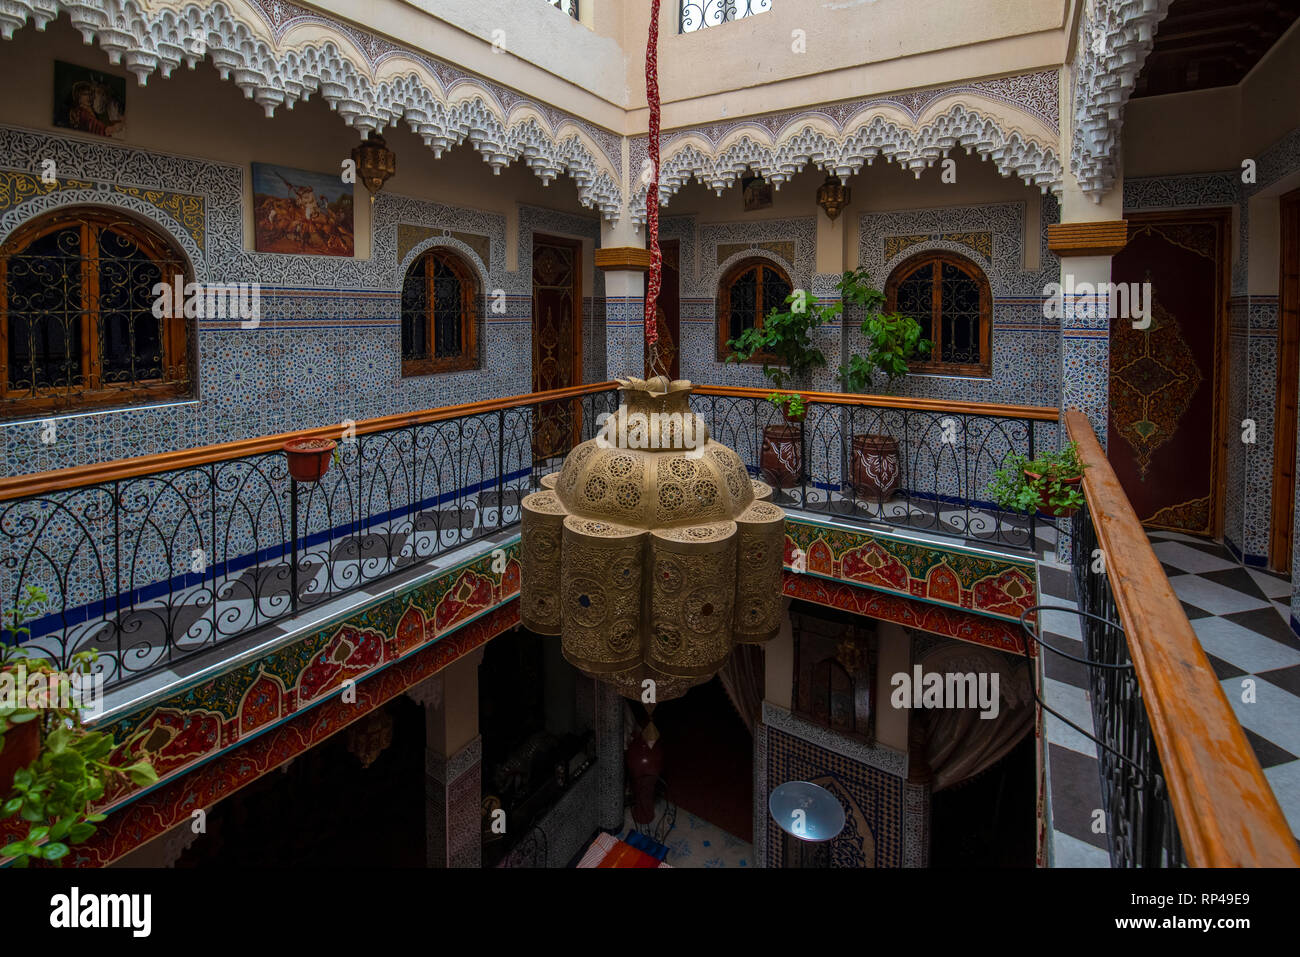 Inner courtyard with tiled walls and floor from mosaic. Traditional ornate and colorful arabesque wall carvings above an archway in Moroccan riad Stock Photo